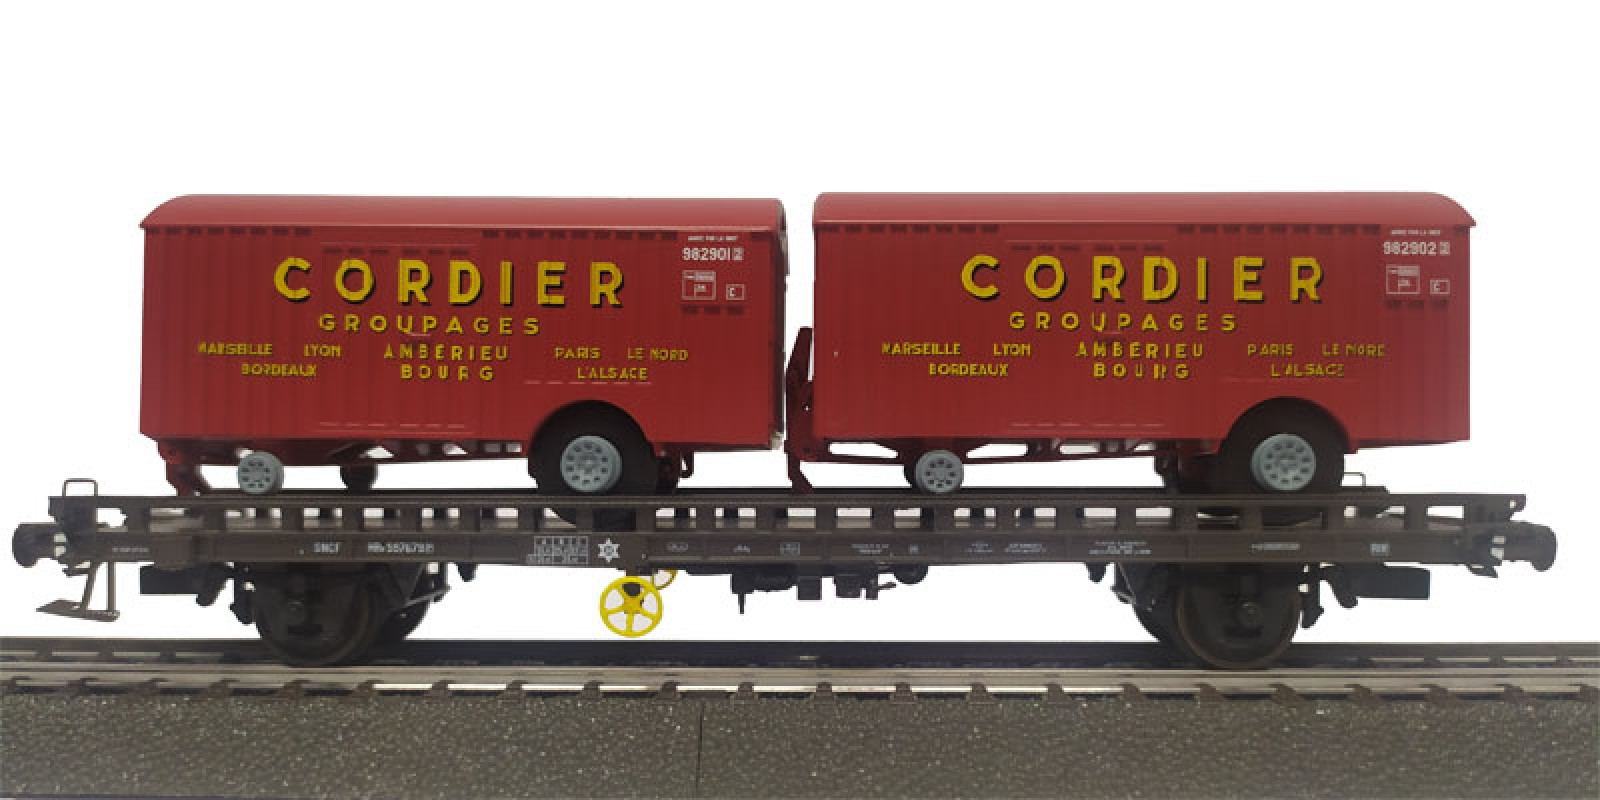 REWB638 Double carrier wagon loaded with box trailer of the SNCF